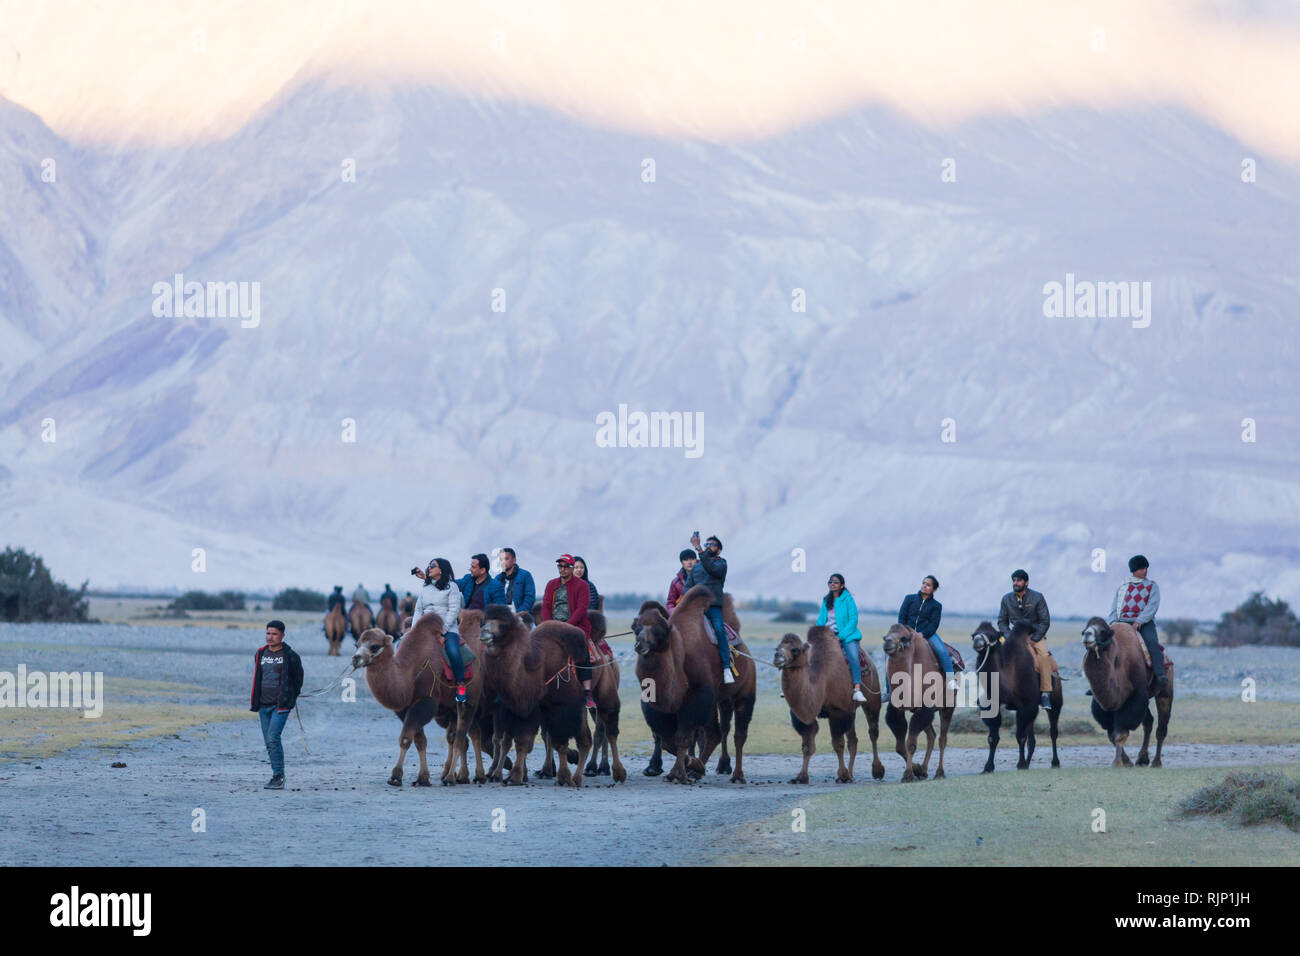 Tourists riding bactrian camels in the area of Hunder, Nubra Valley, Ladakh, Jammu and Kashmir, India Stock Photo